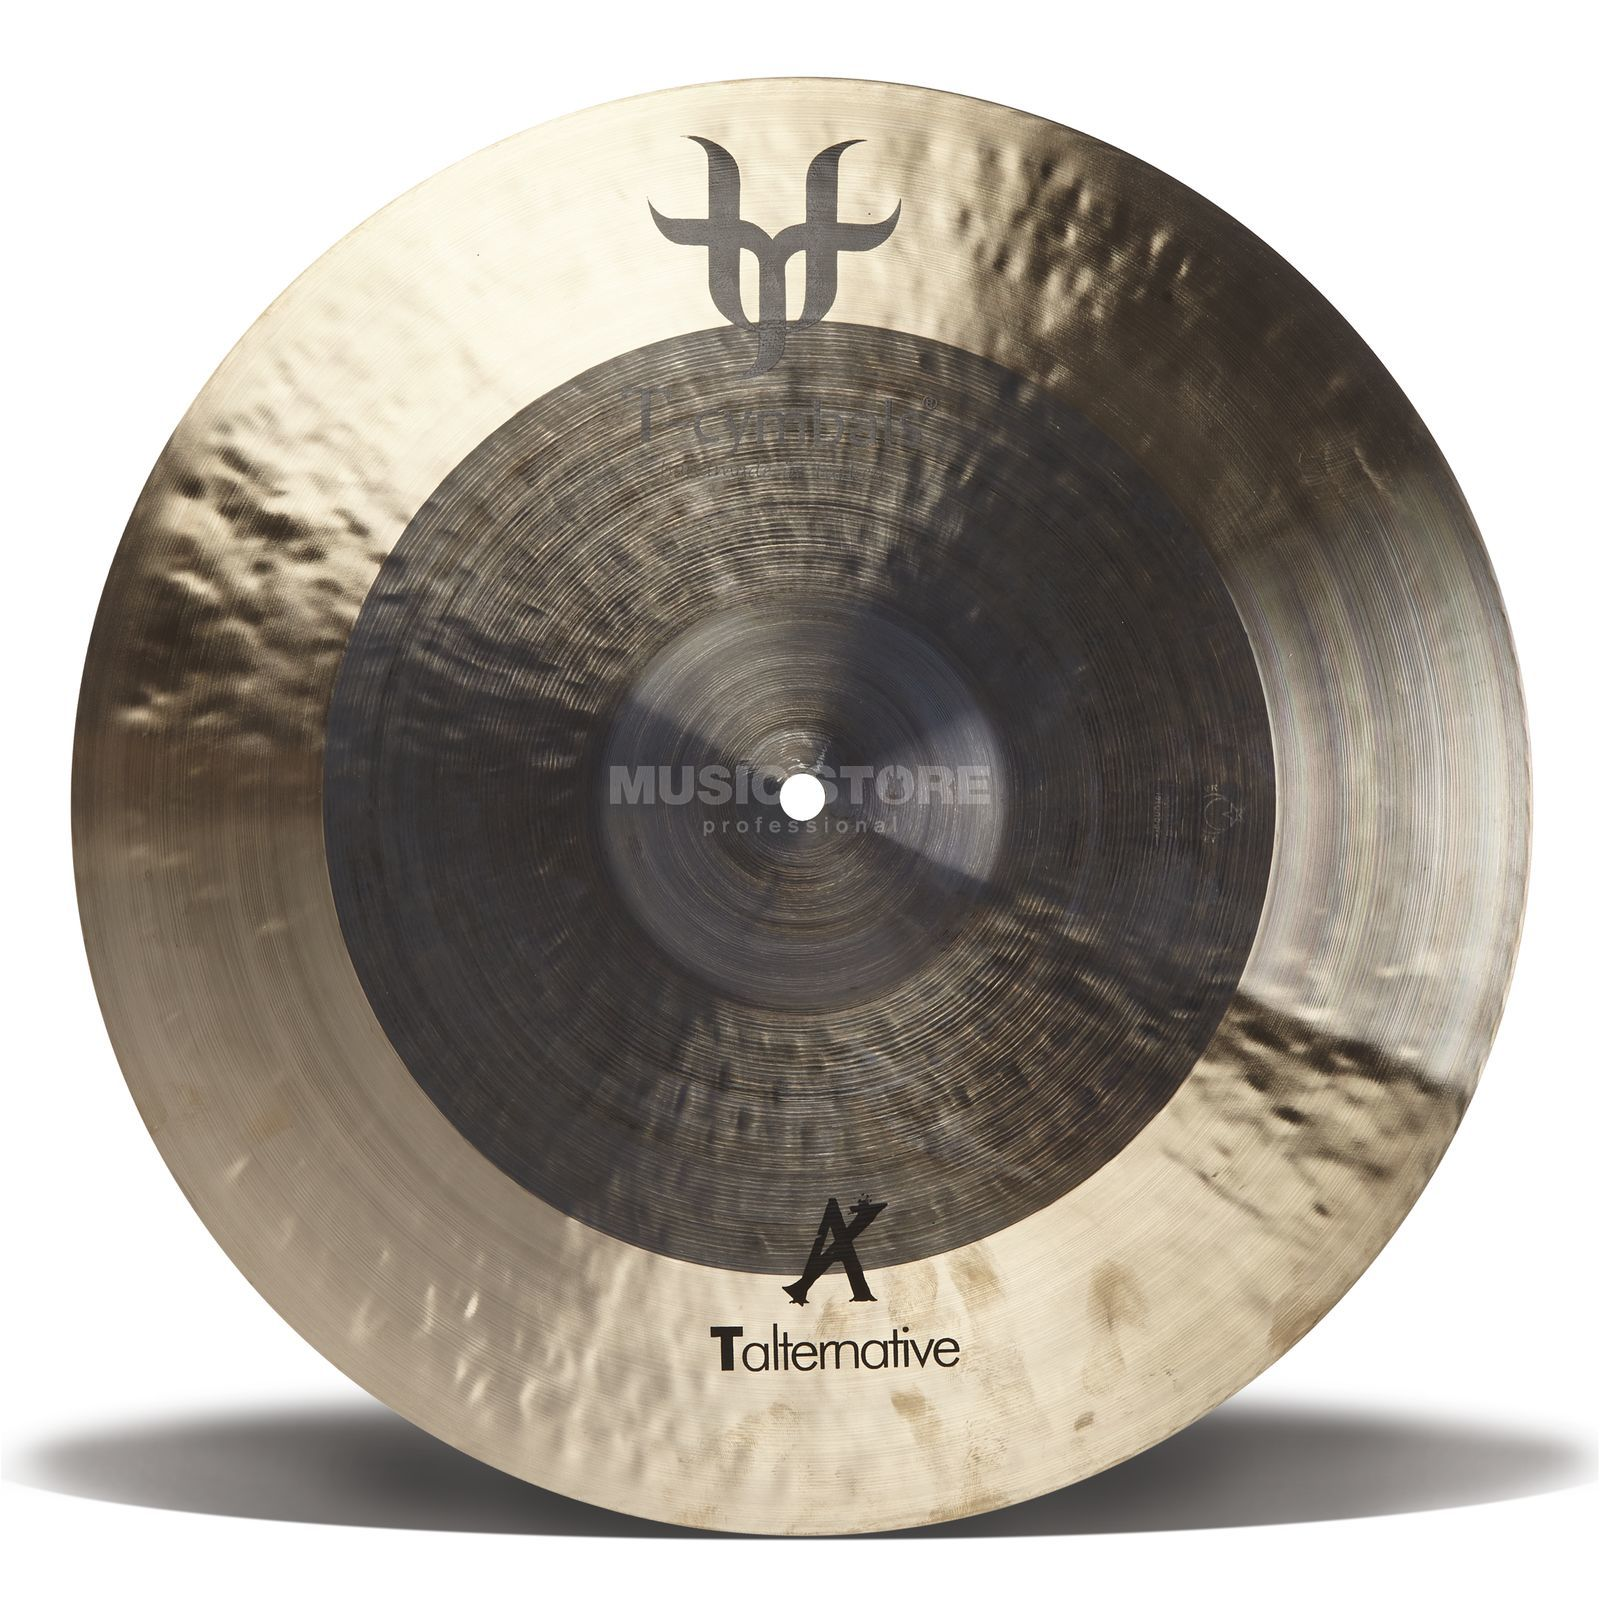 "T-Cymbals T-Alternative Light Crash 18"" Product Image"